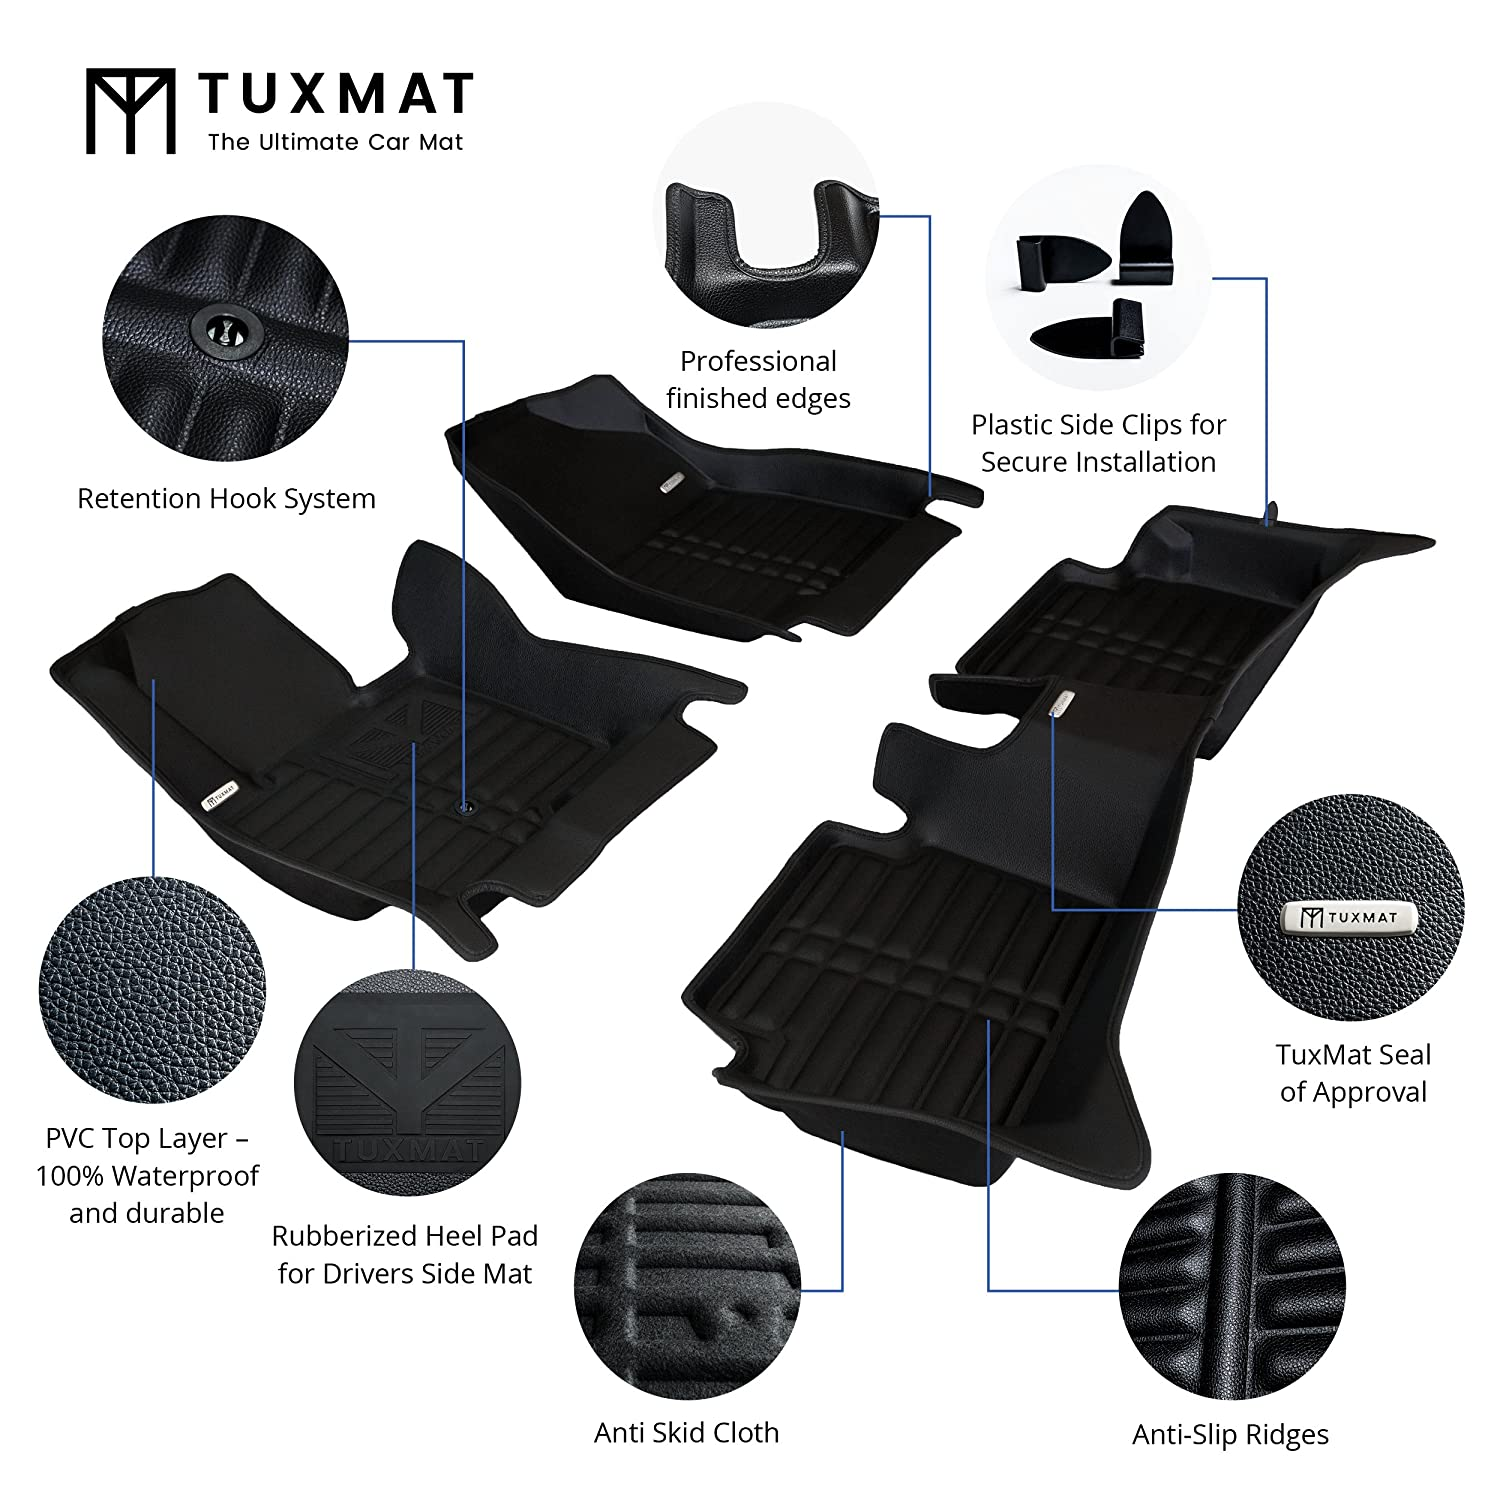 Largest Coverage Waterproof TuxMat Custom Car Floor Mats for Toyota Corolla Sedan 2014-2019 Models/ - Laser Measured The Ultimate Winter Mats All Weather Full Set - Black